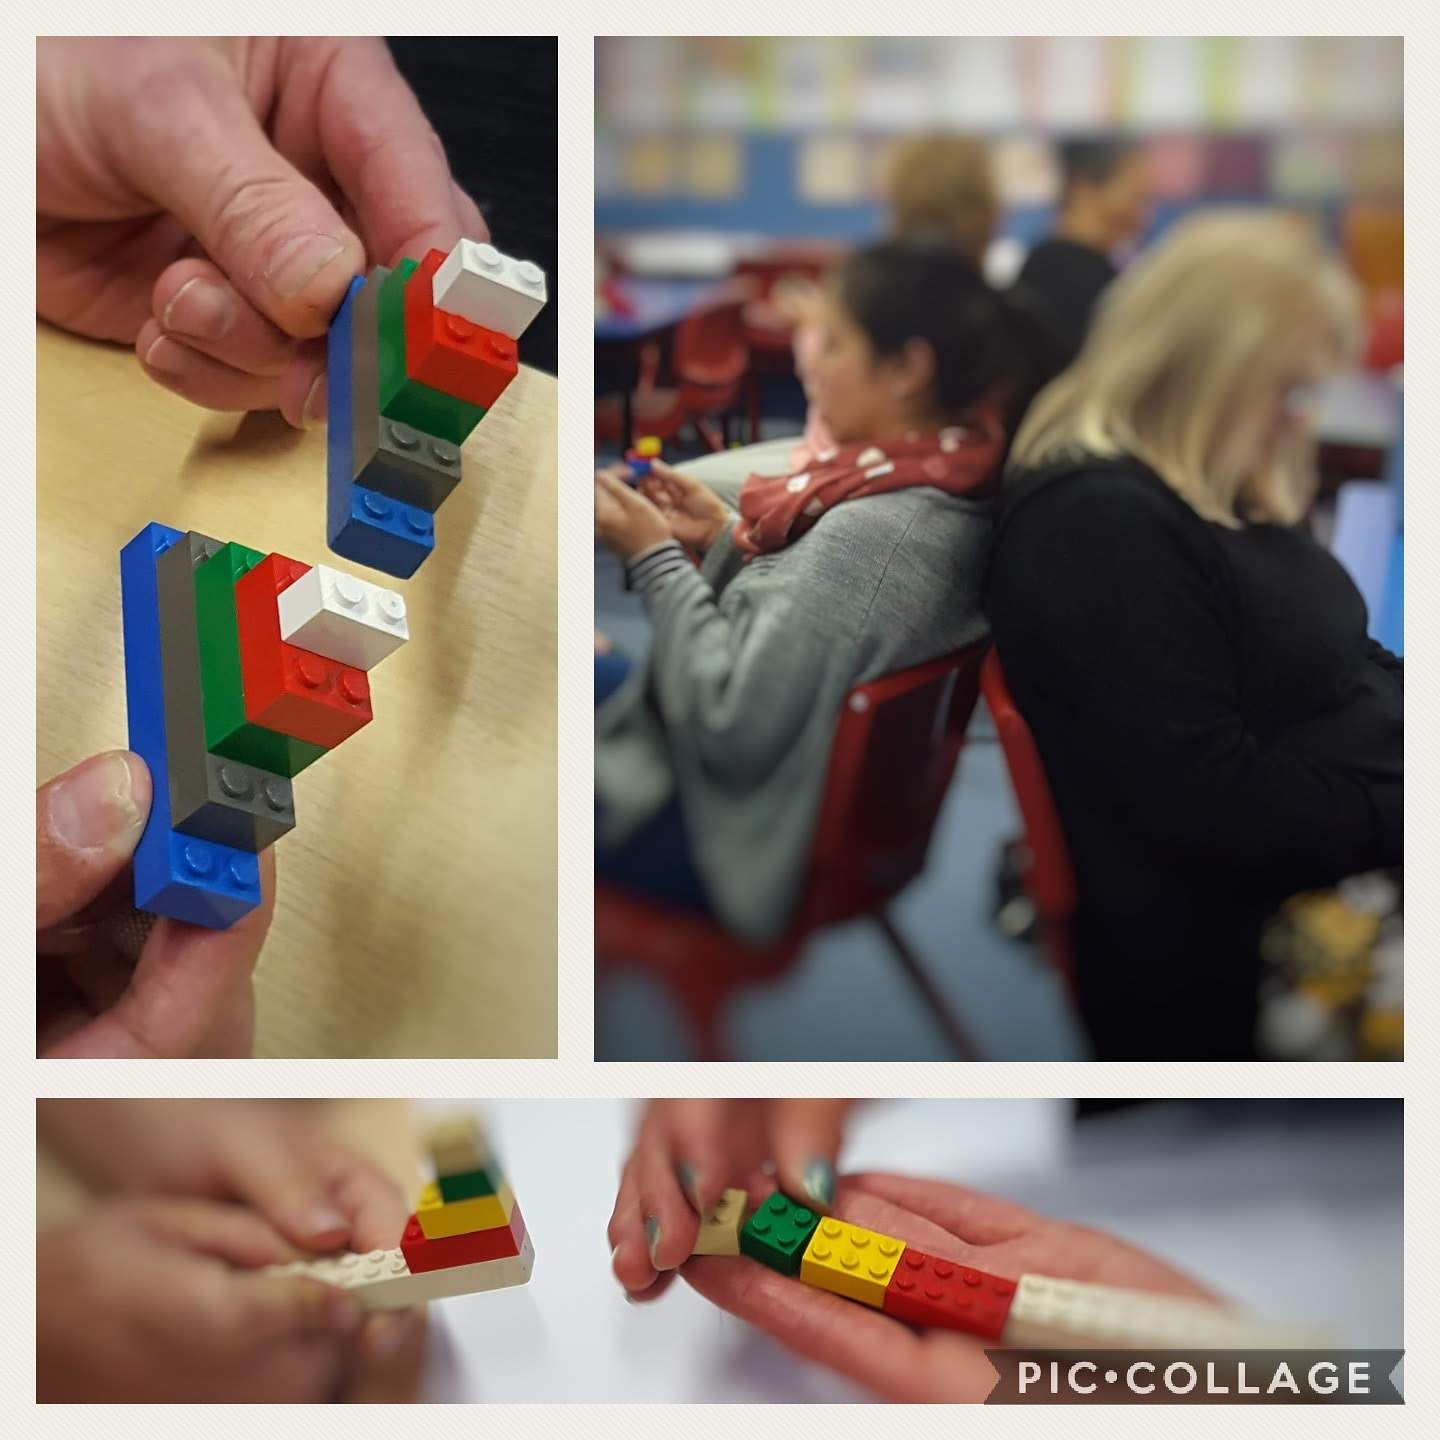 three images showing two people sitting back to back making a model with lego pieces. one image shows two models the same, the other shows two completely different models